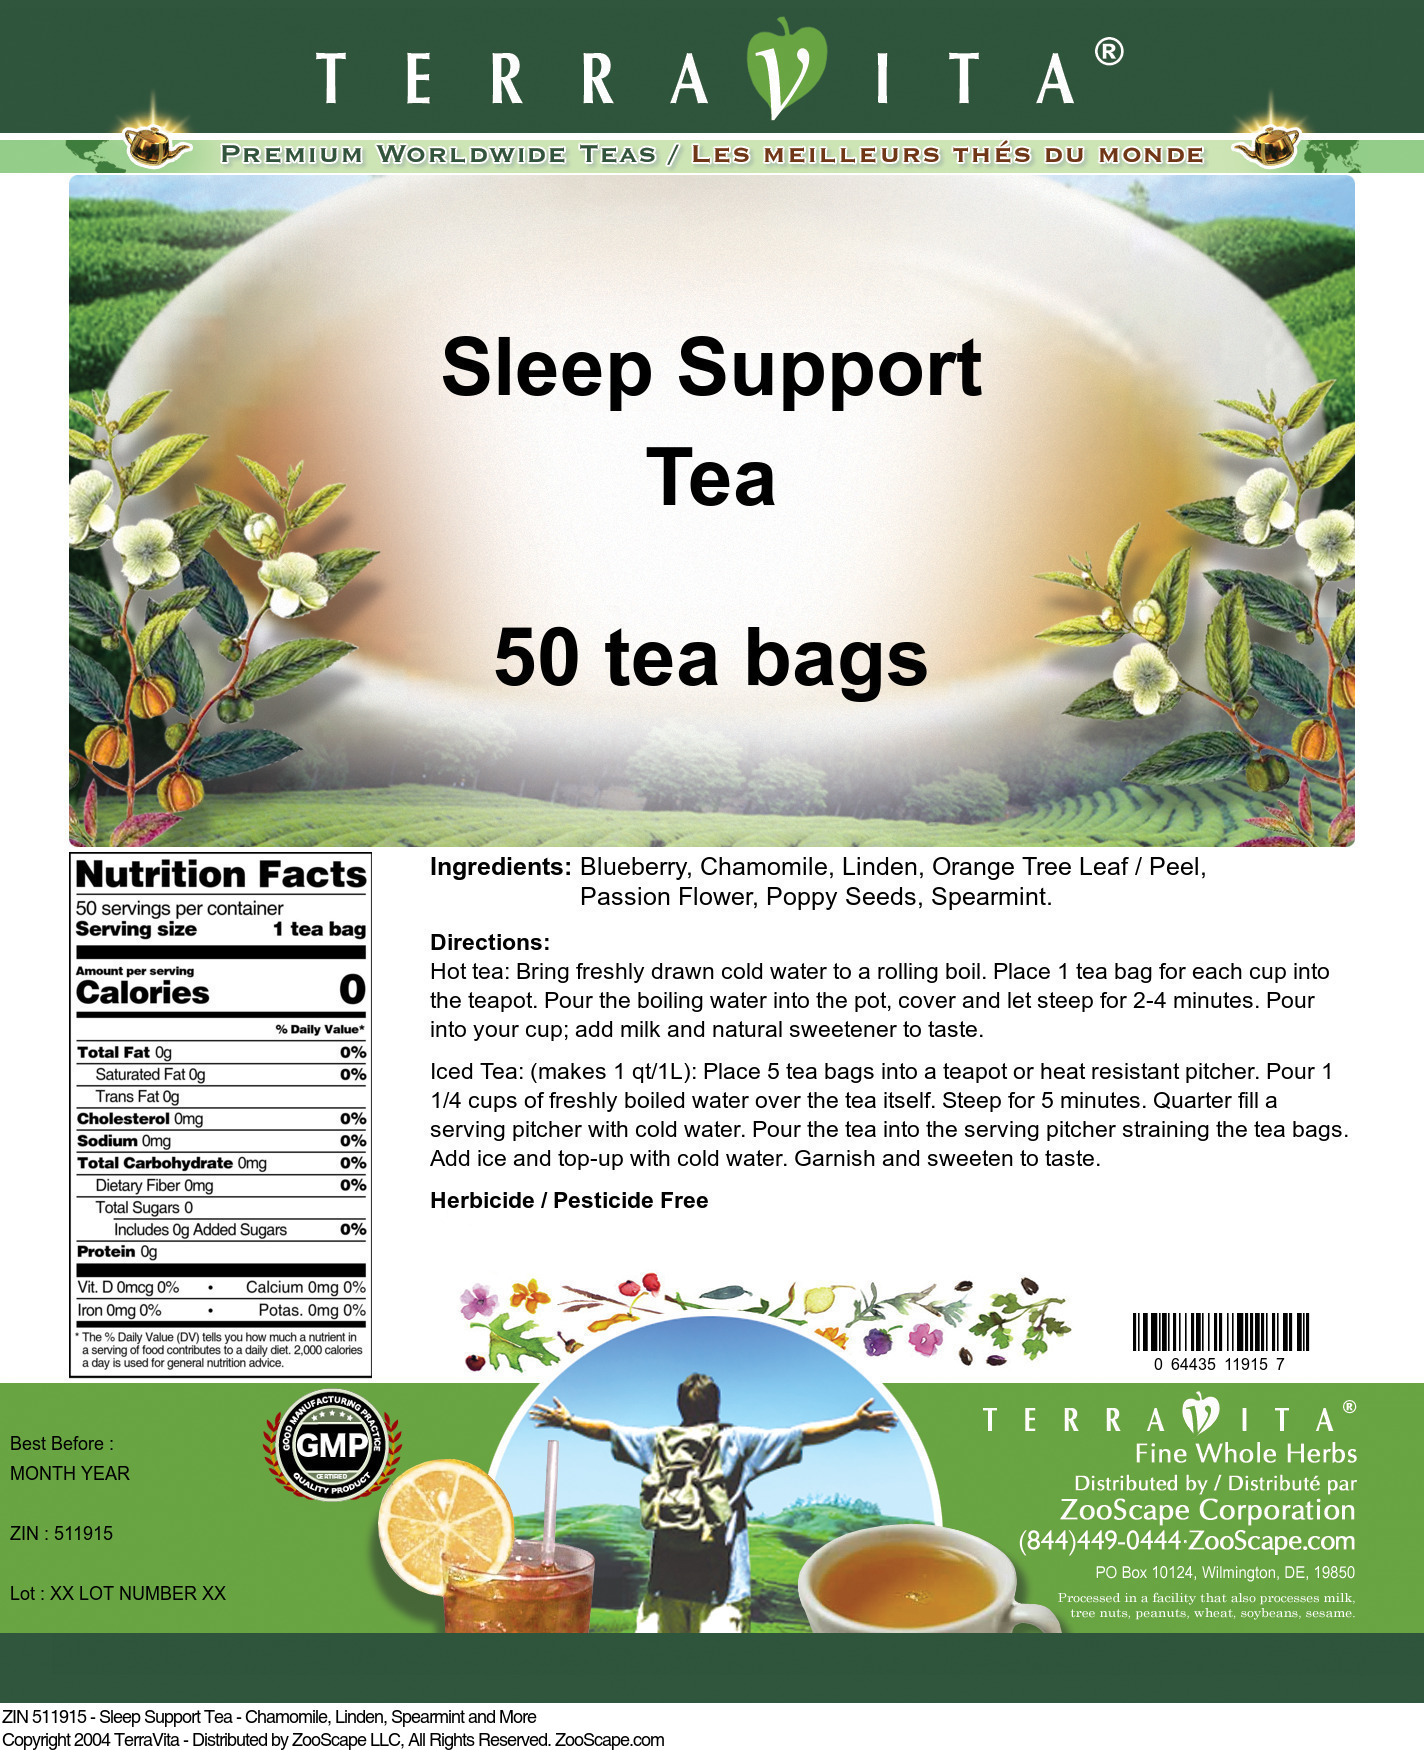 Sleep Support Tea - Chamomile, Linden, Spearmint and More